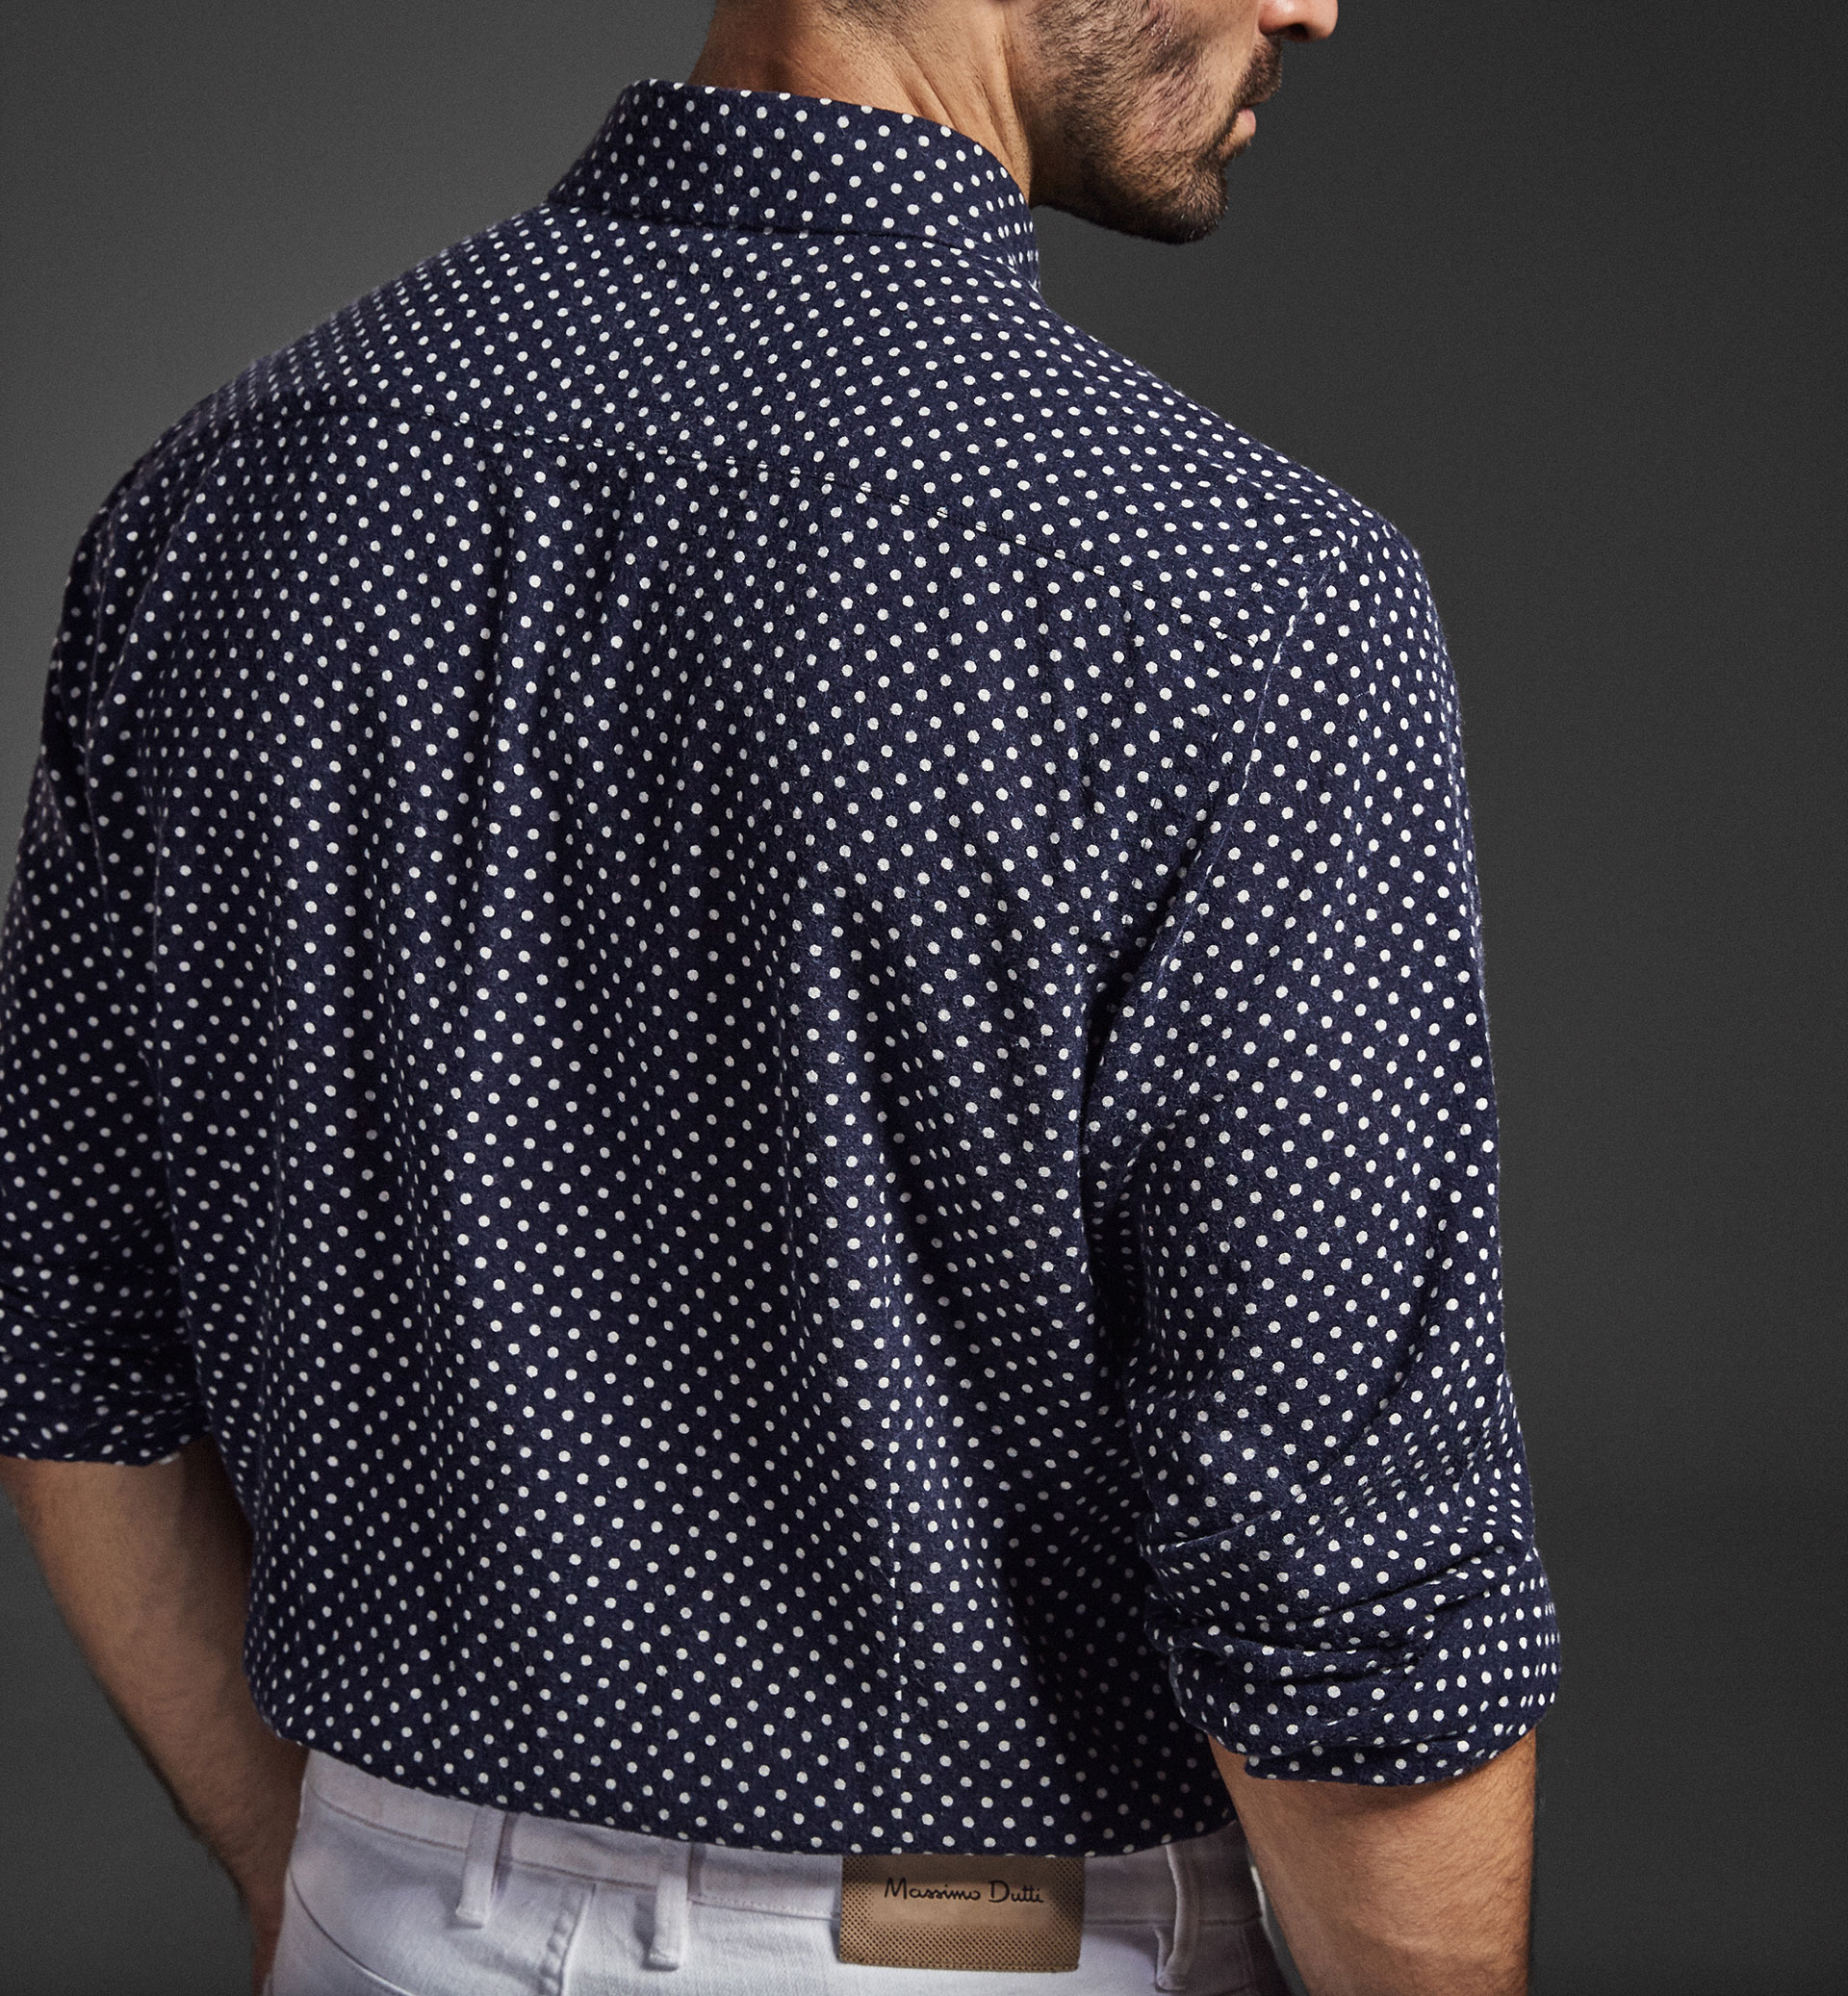 LIMITED EDITION BLUE SHIRT WITH POLKA DOT DETAILS